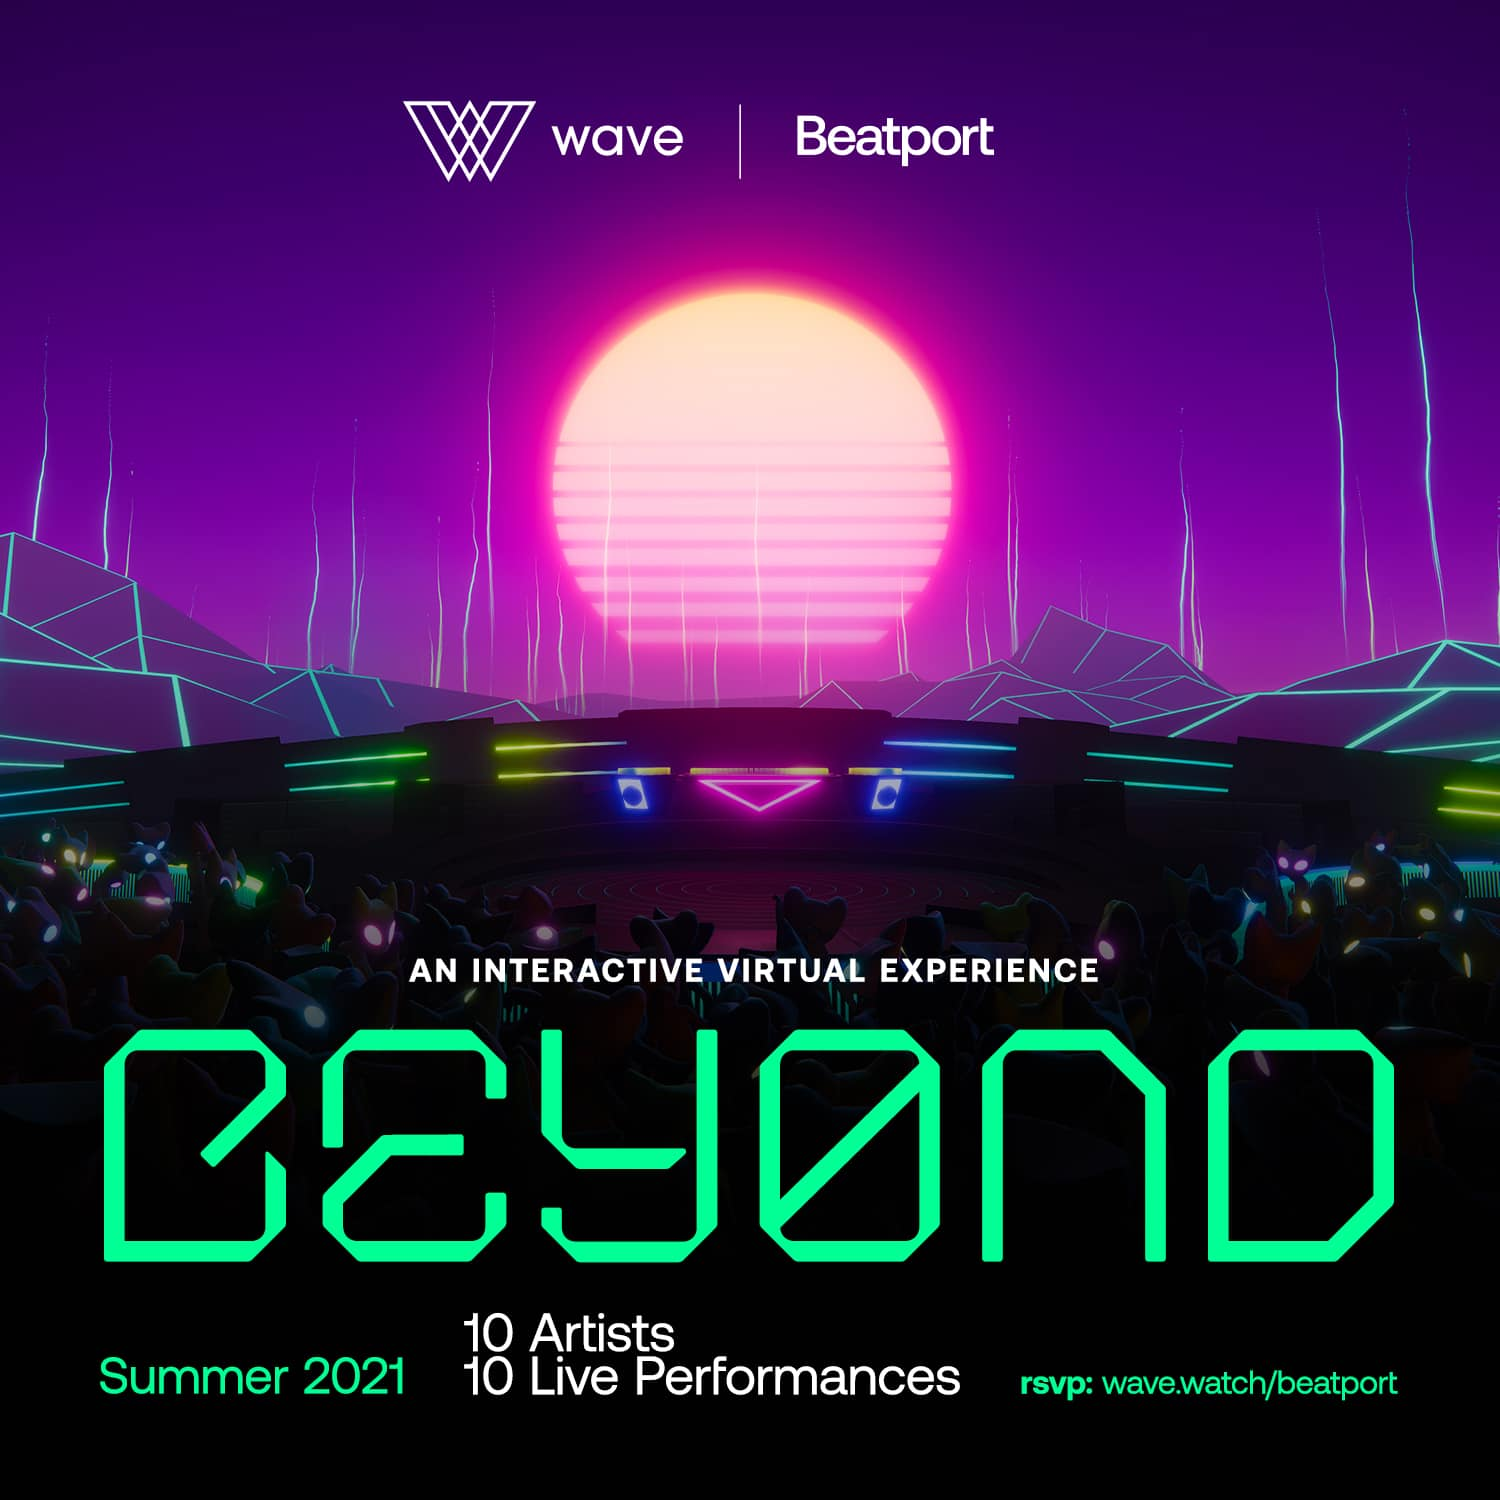 Numerous Artists Join Beatport x Wave A/V Partnership